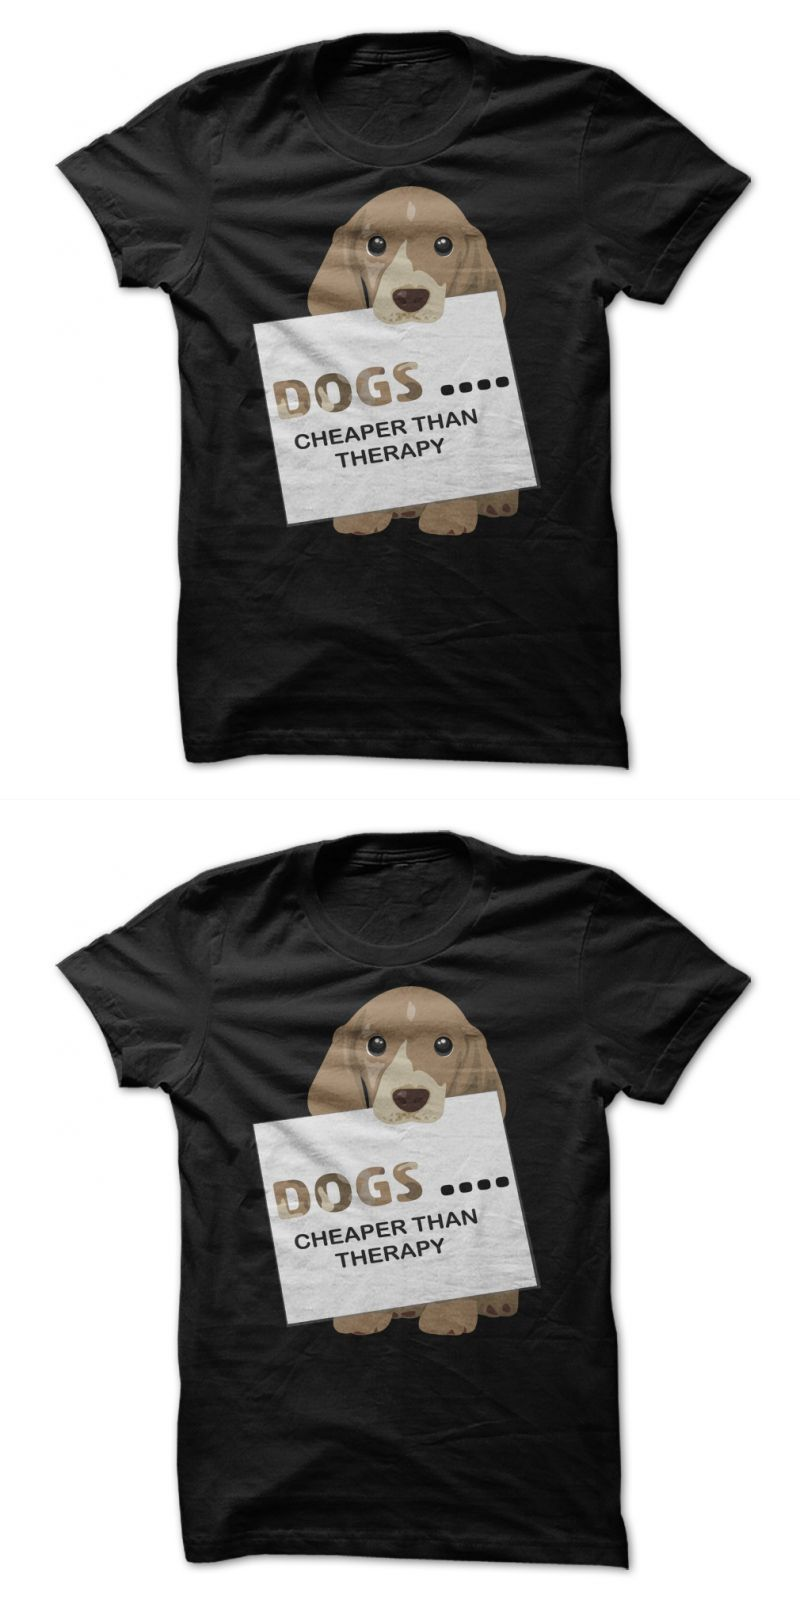 My Dog Gives Me The Bird T Shirt Dogs Cheaper Than Therapy Dog Handler T Shirt Dog Rescue T Shirt Ideas Dog Shirt M Dog Tshirt T Shirt Therapy Dogs